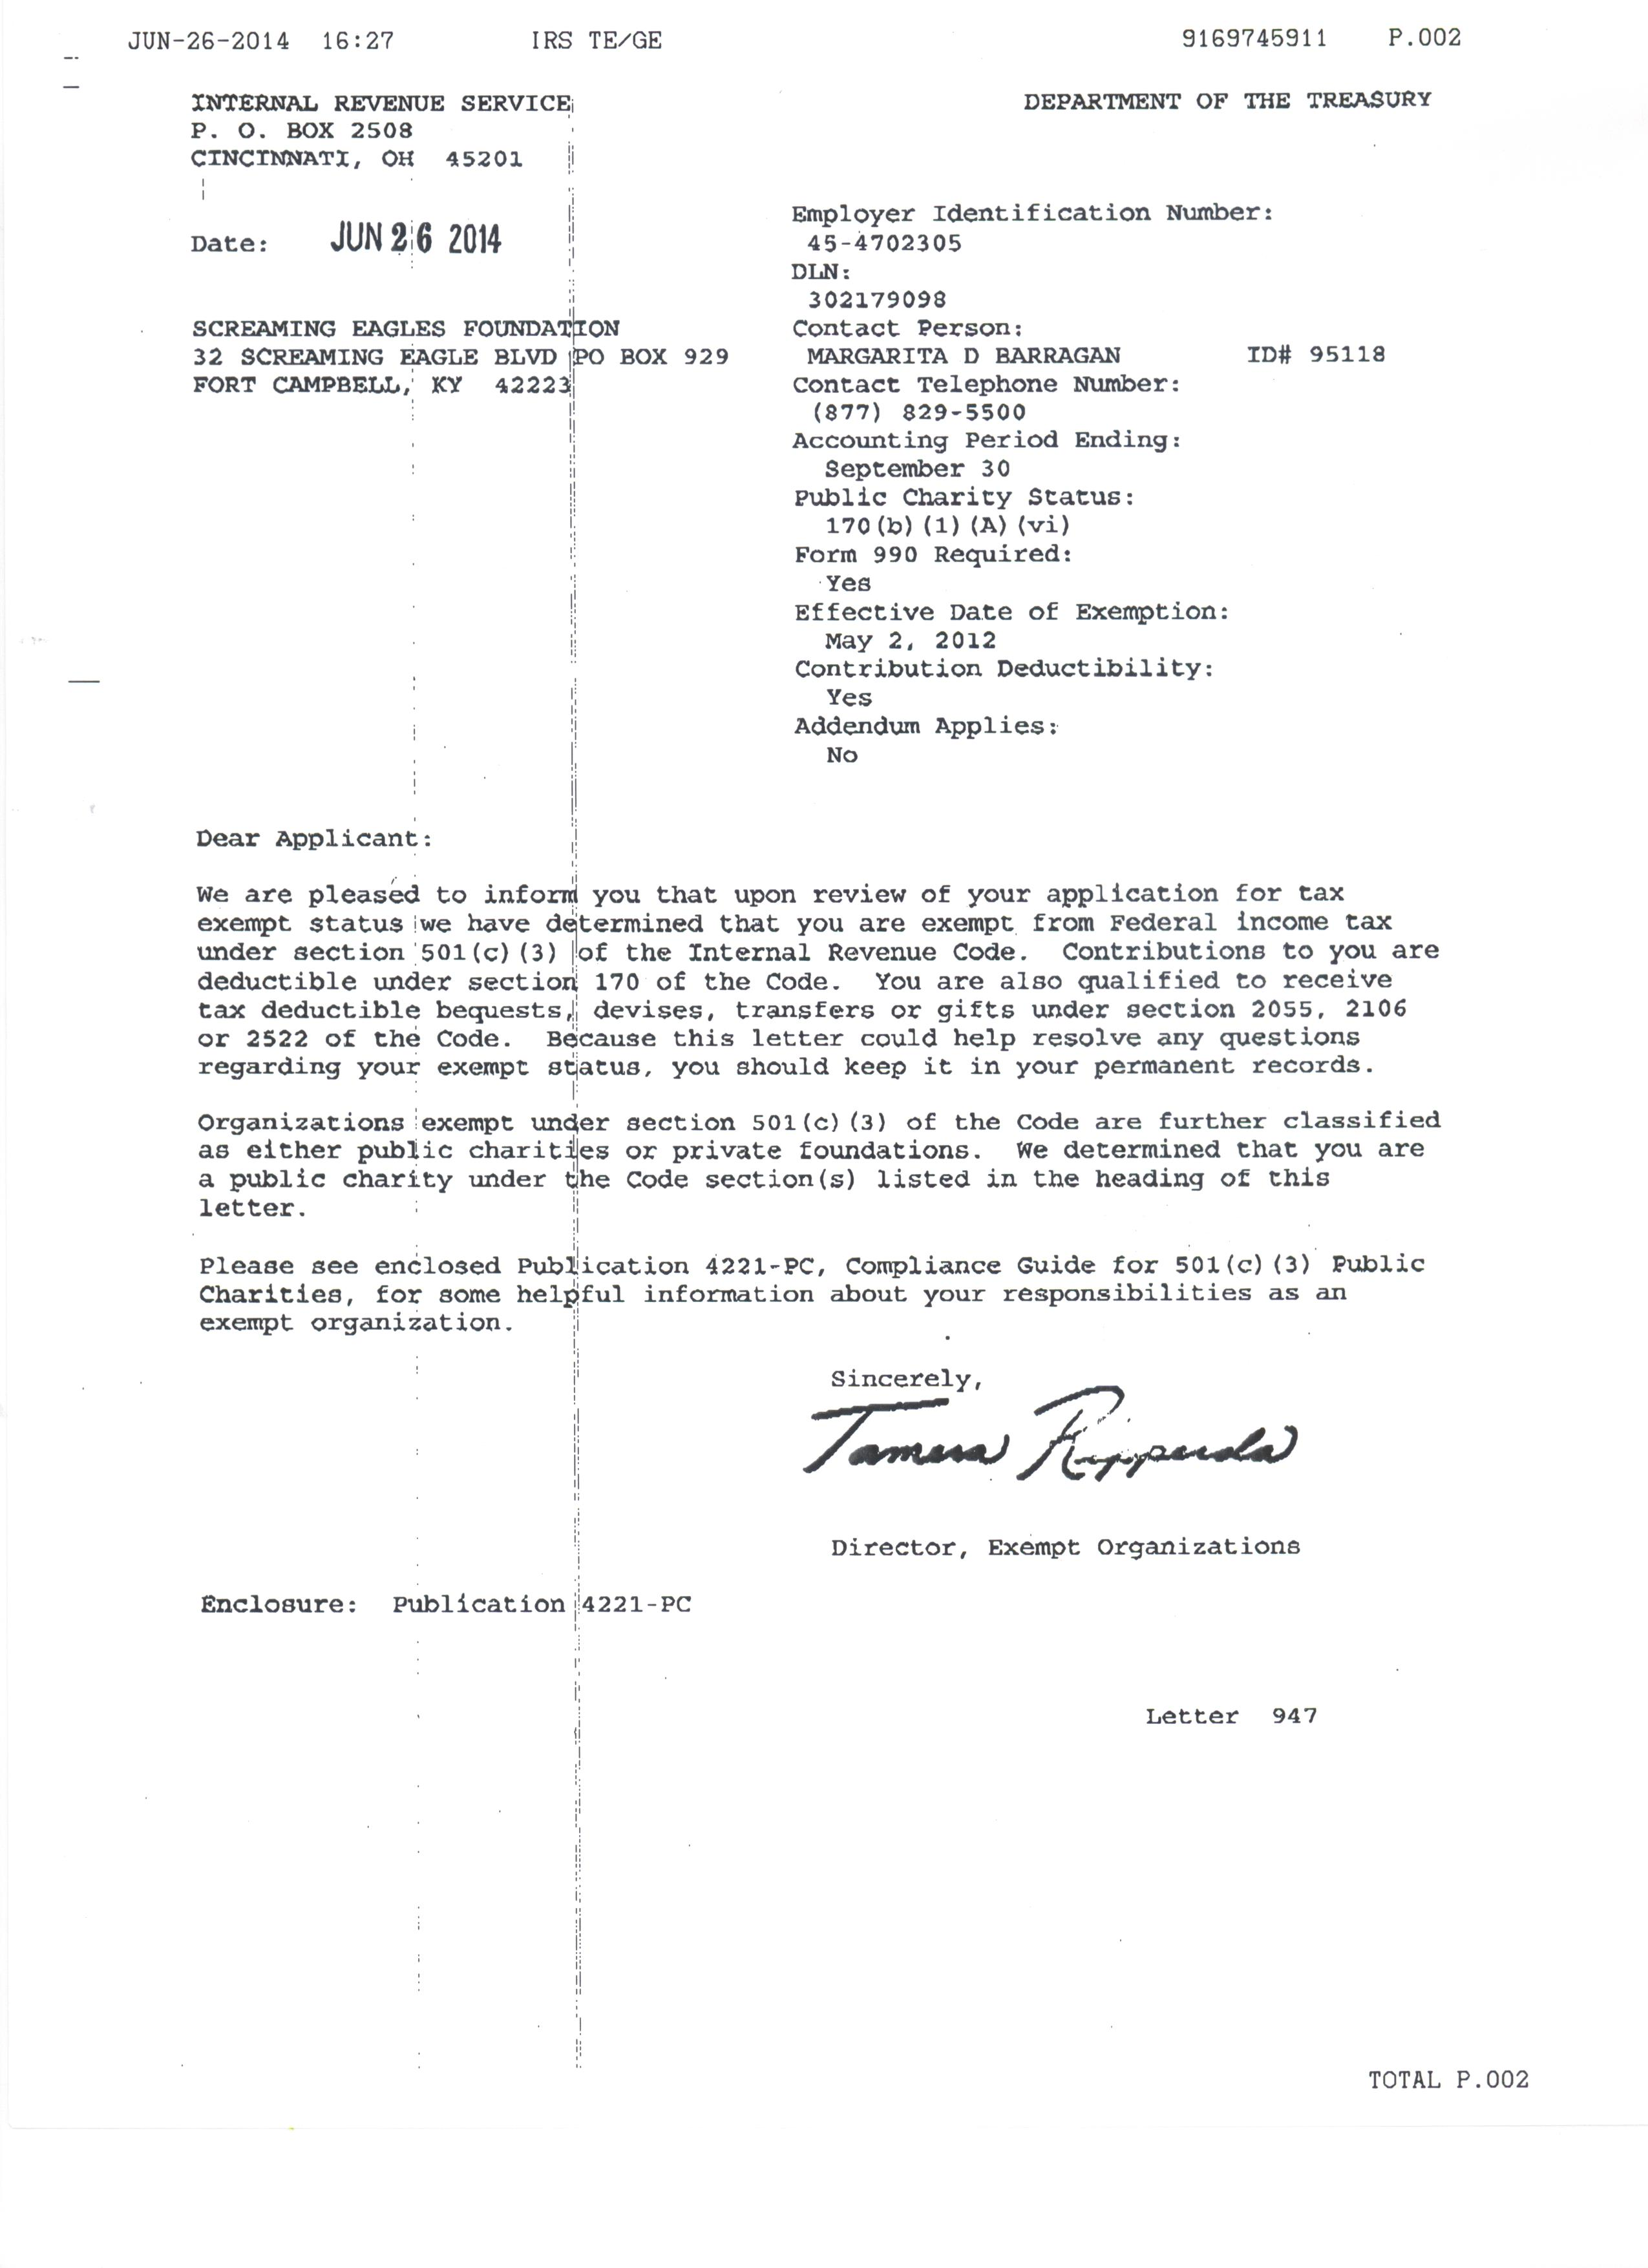 foundation approval letter screaming eagle foundation